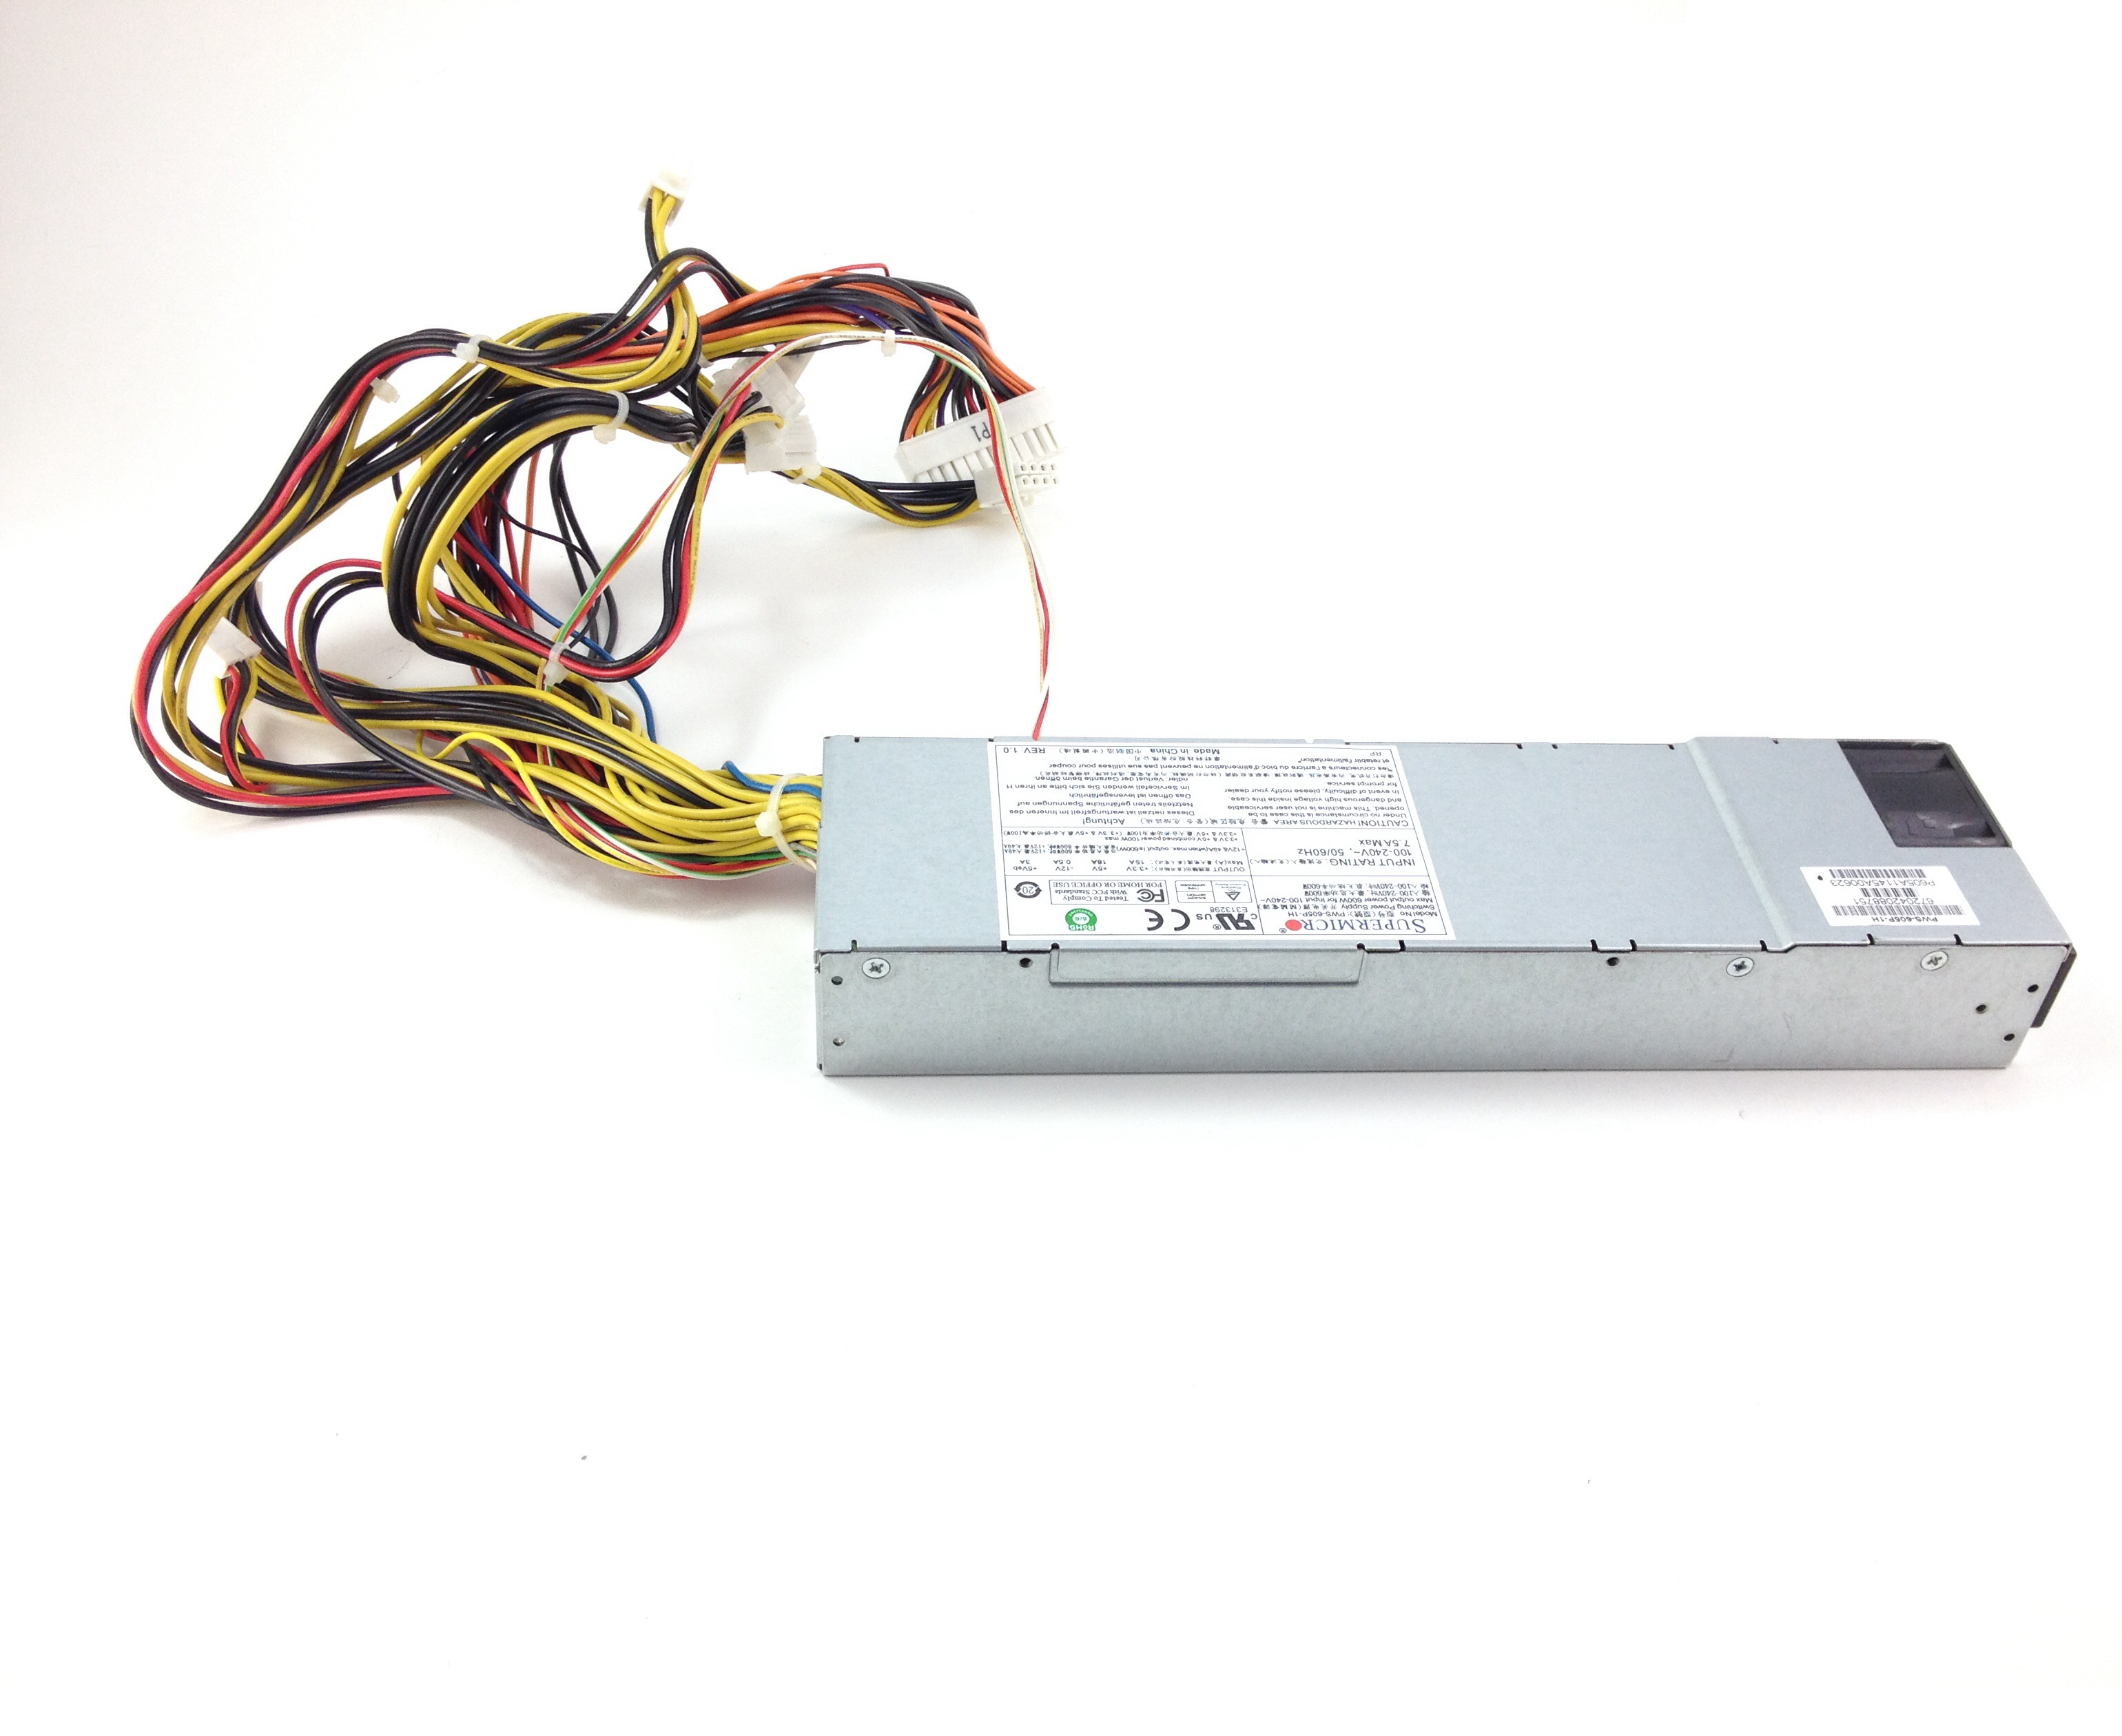 SUPERMICRO 600W 1U 80PLUS PLATINUM POWER SUPPLY (PWS-605P-1H)